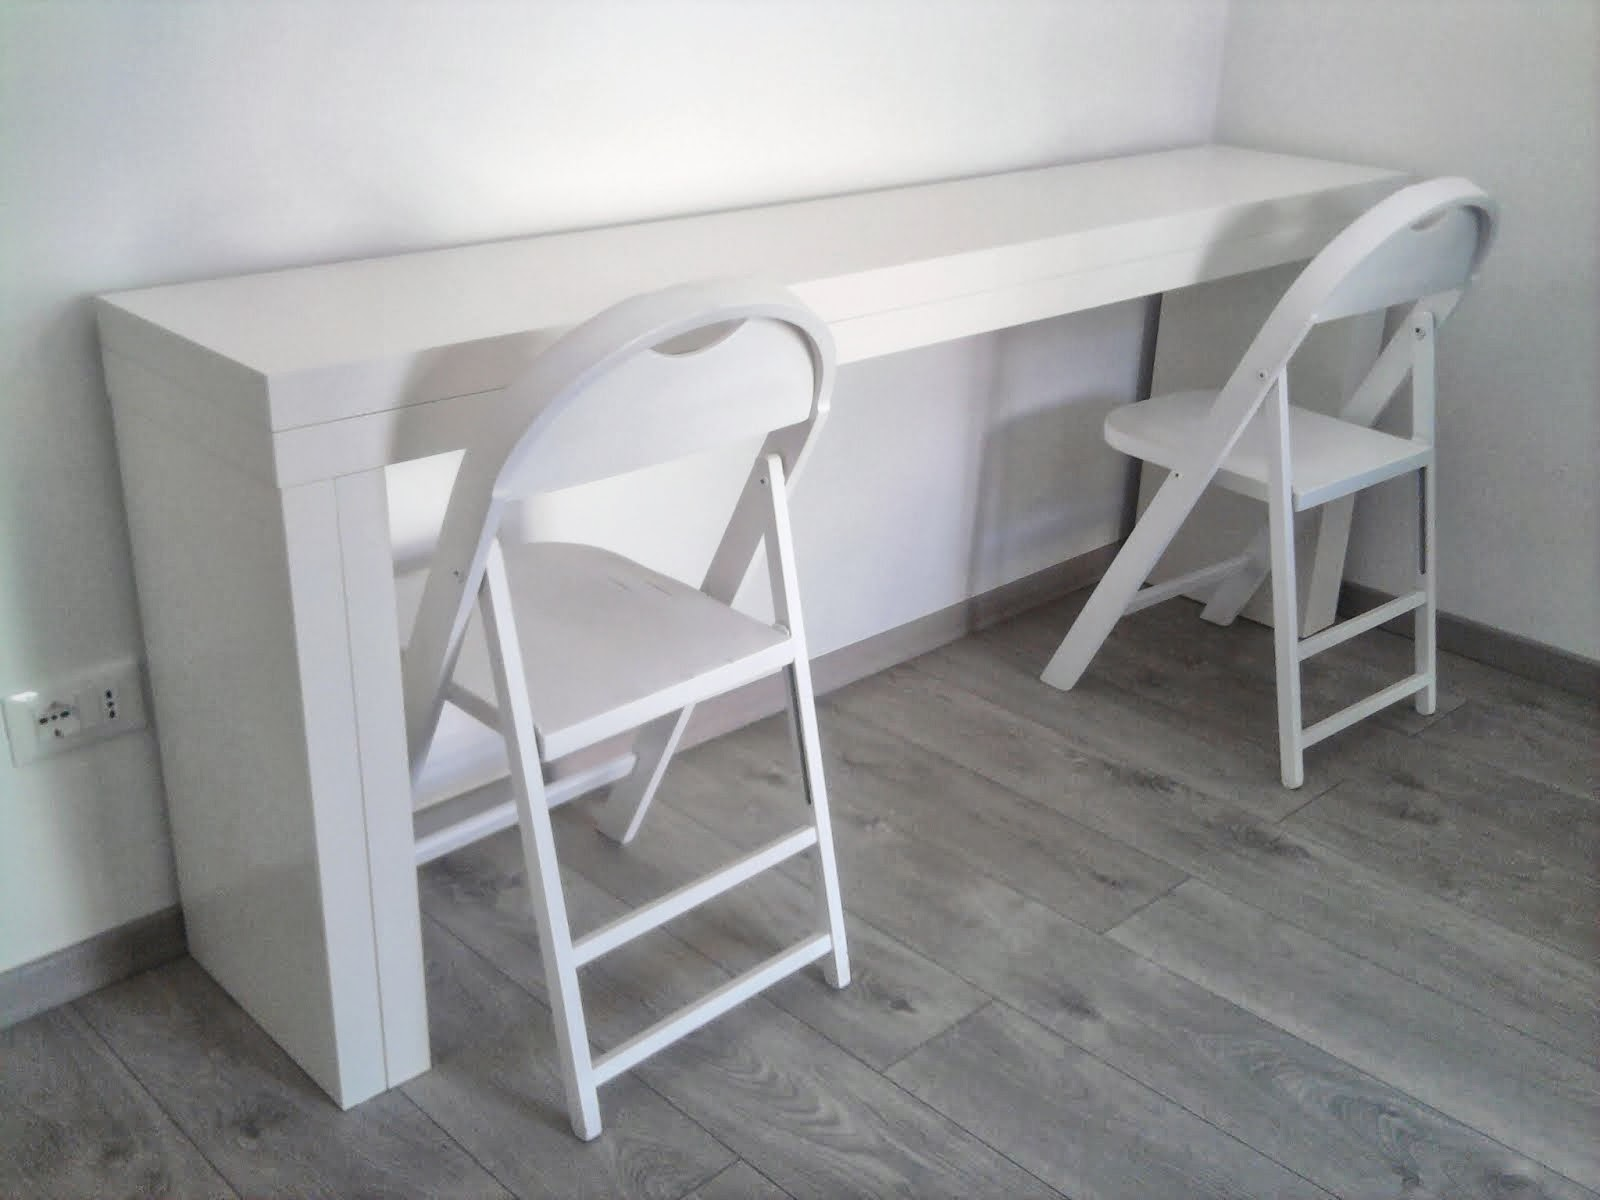 Lack Sofa Table As Desk Bed Parts Uk Double It Malm Console Becomes A 10 People Ikea